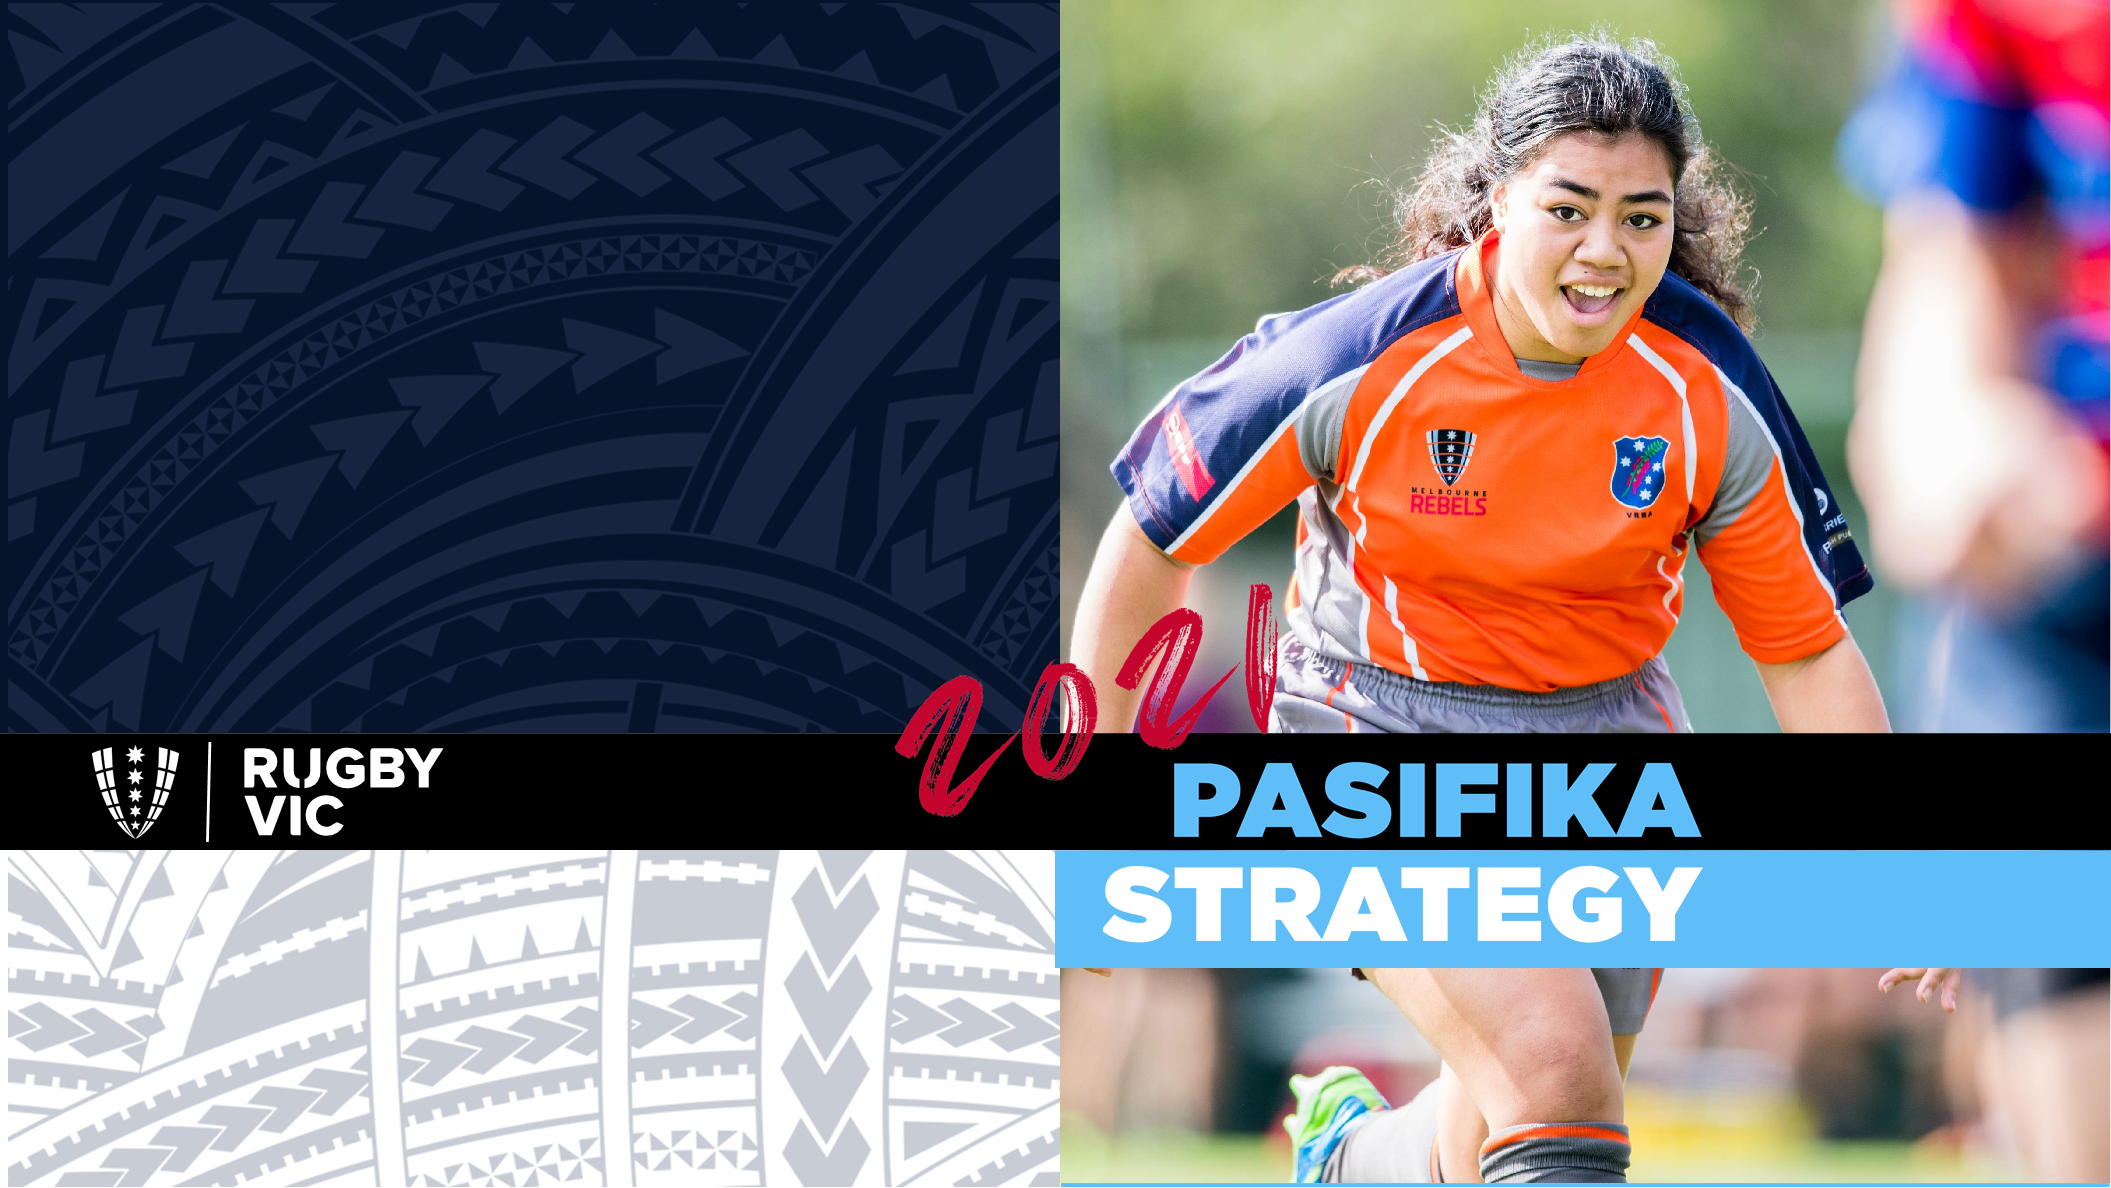 Rugby Vic Pasifika Strategy